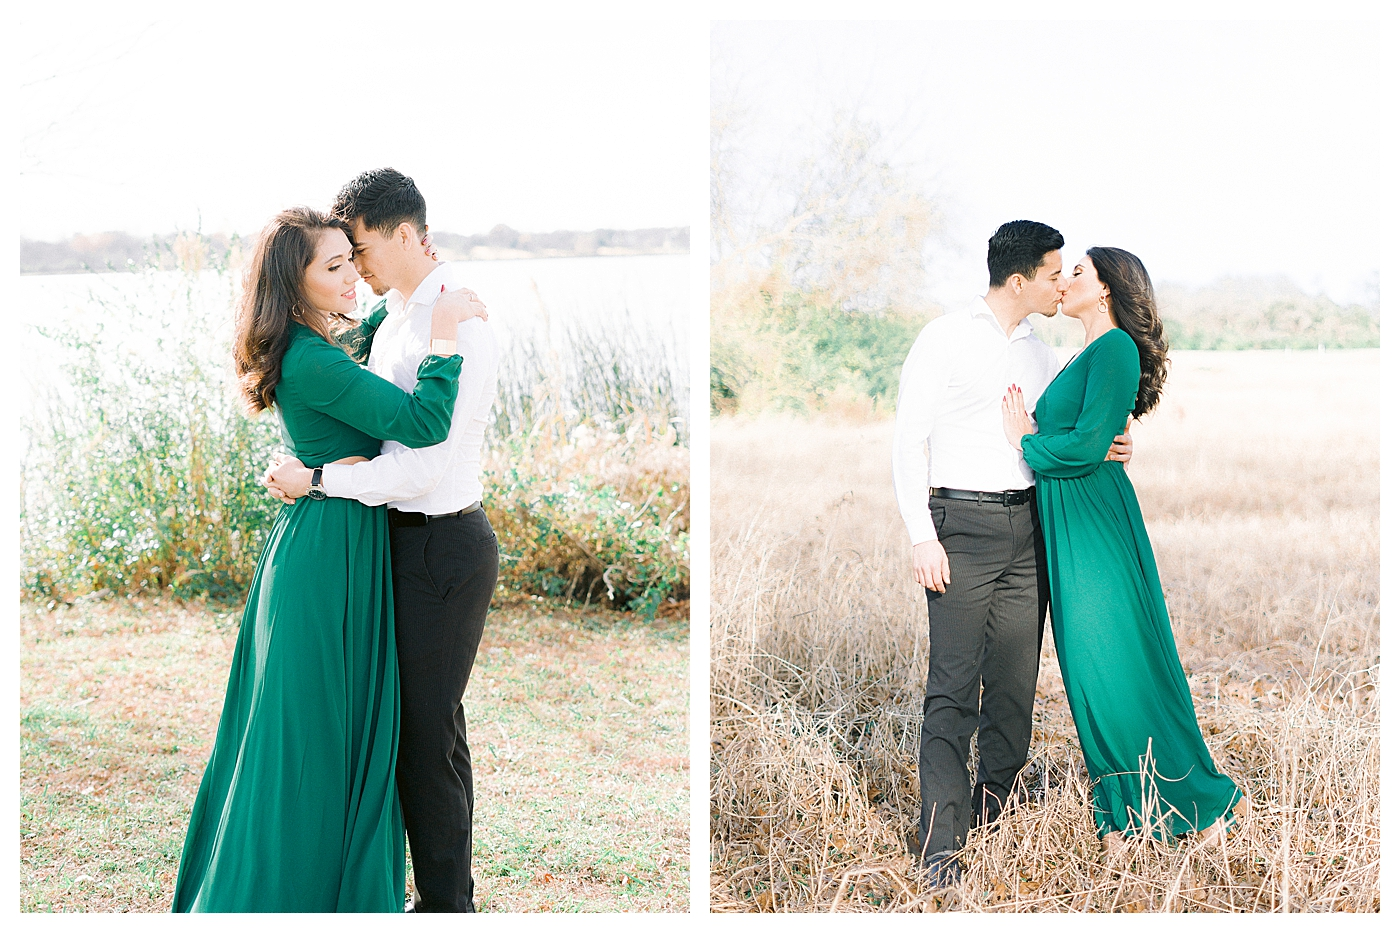 Rossalya & Carlos's Engagement Session |  White Rock Lake Dallas, Texas Wedding Photographer Dallas-Fort Worth Heirloom Rose Photography Image Copyright Heirloom Rose Photography